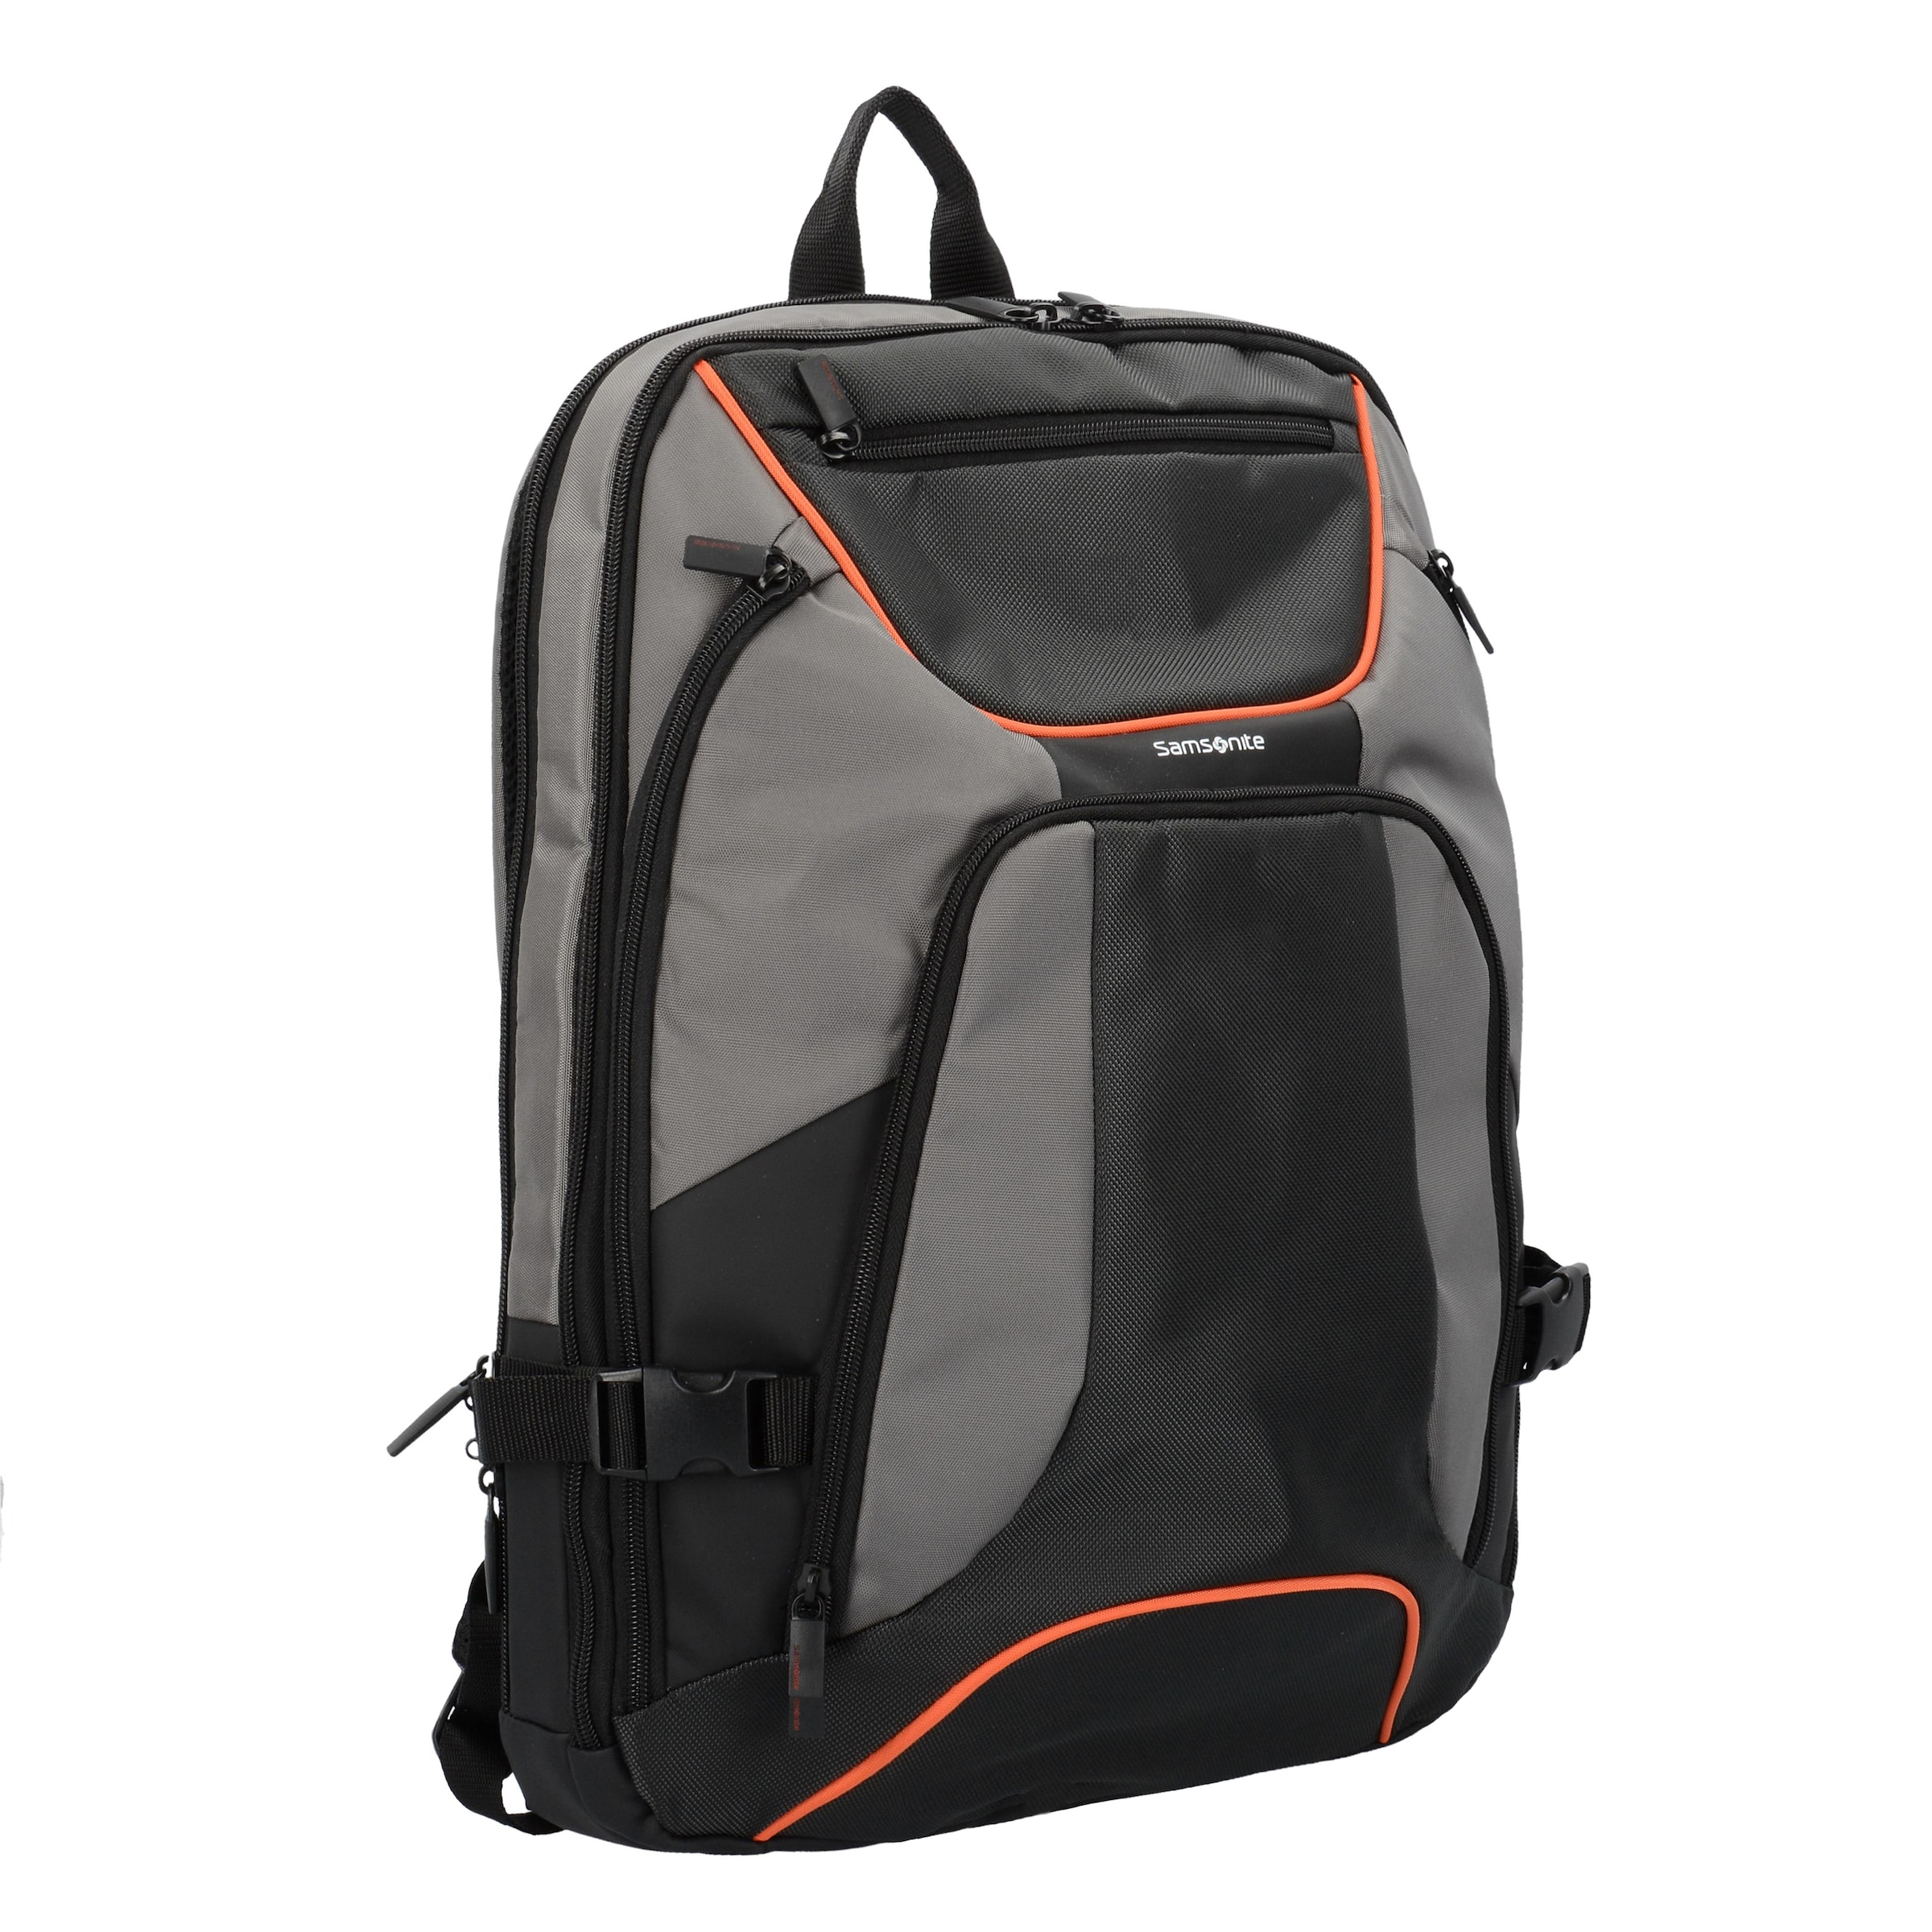 Business In Samsonite GrauAnthrazit Rucksack 'kleur' dxeCBo